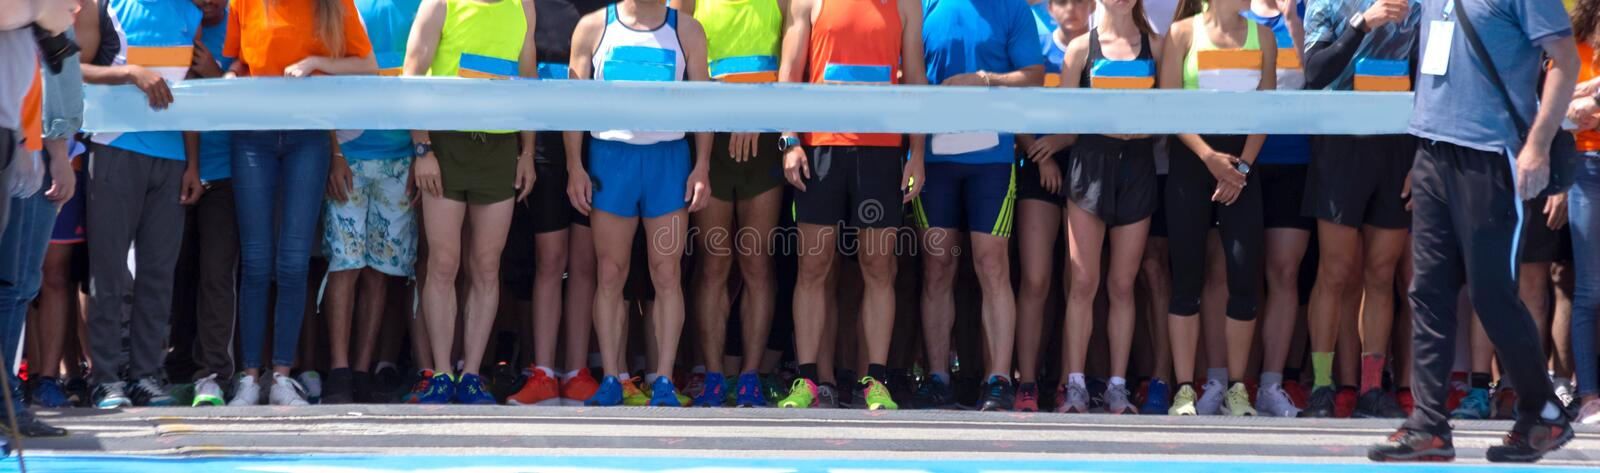 Start lin in road marathon competition feet background. Athletes royalty free stock photography